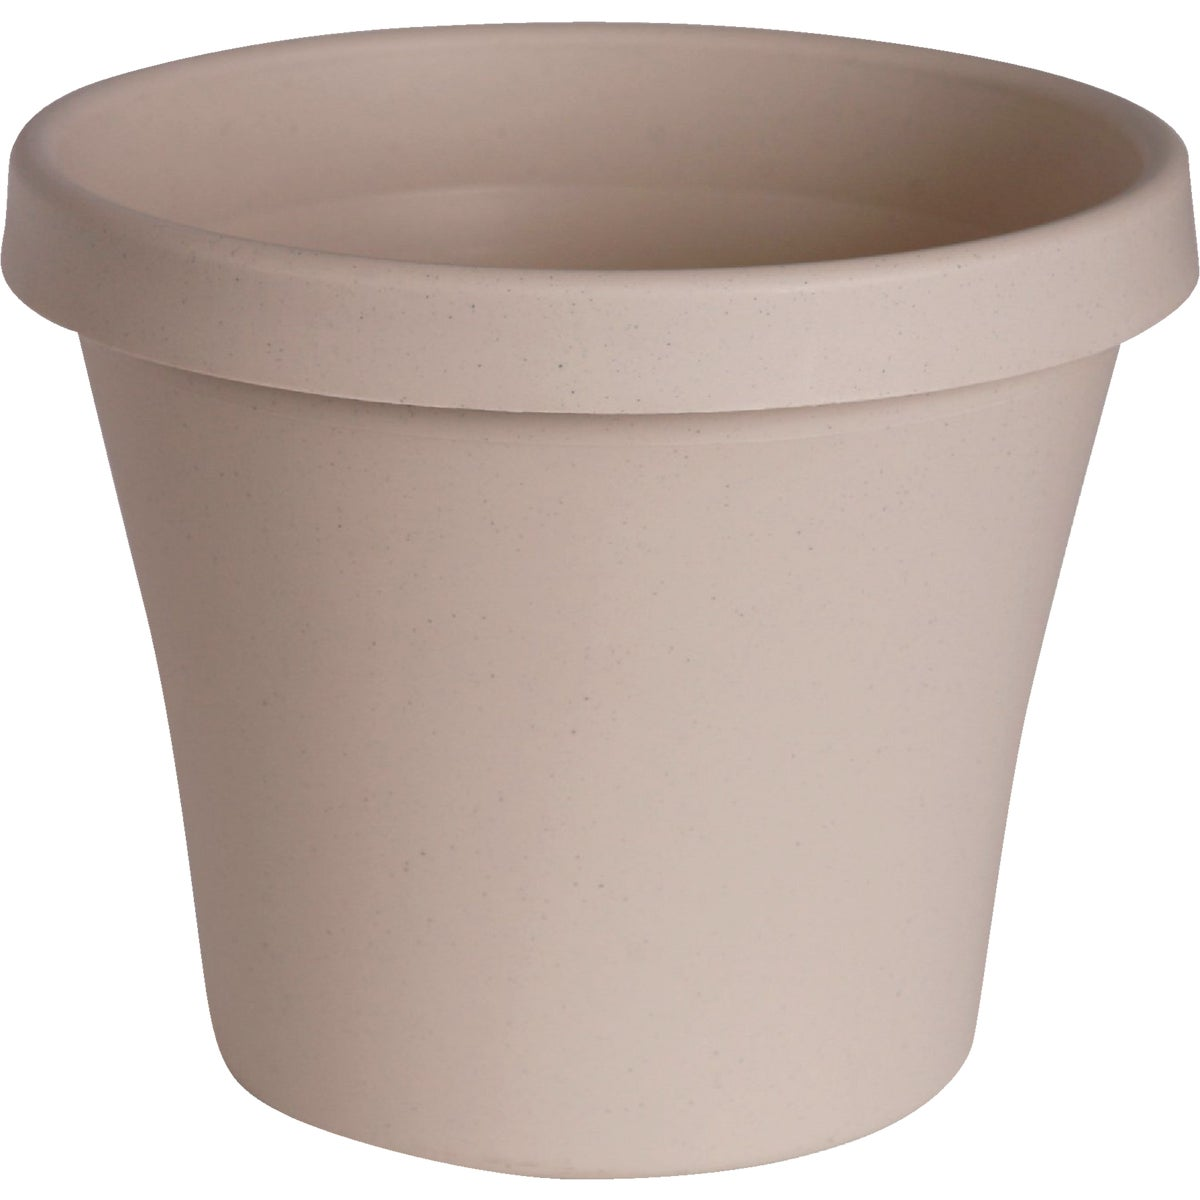 "14"" PEPRSTONE POLY POT"